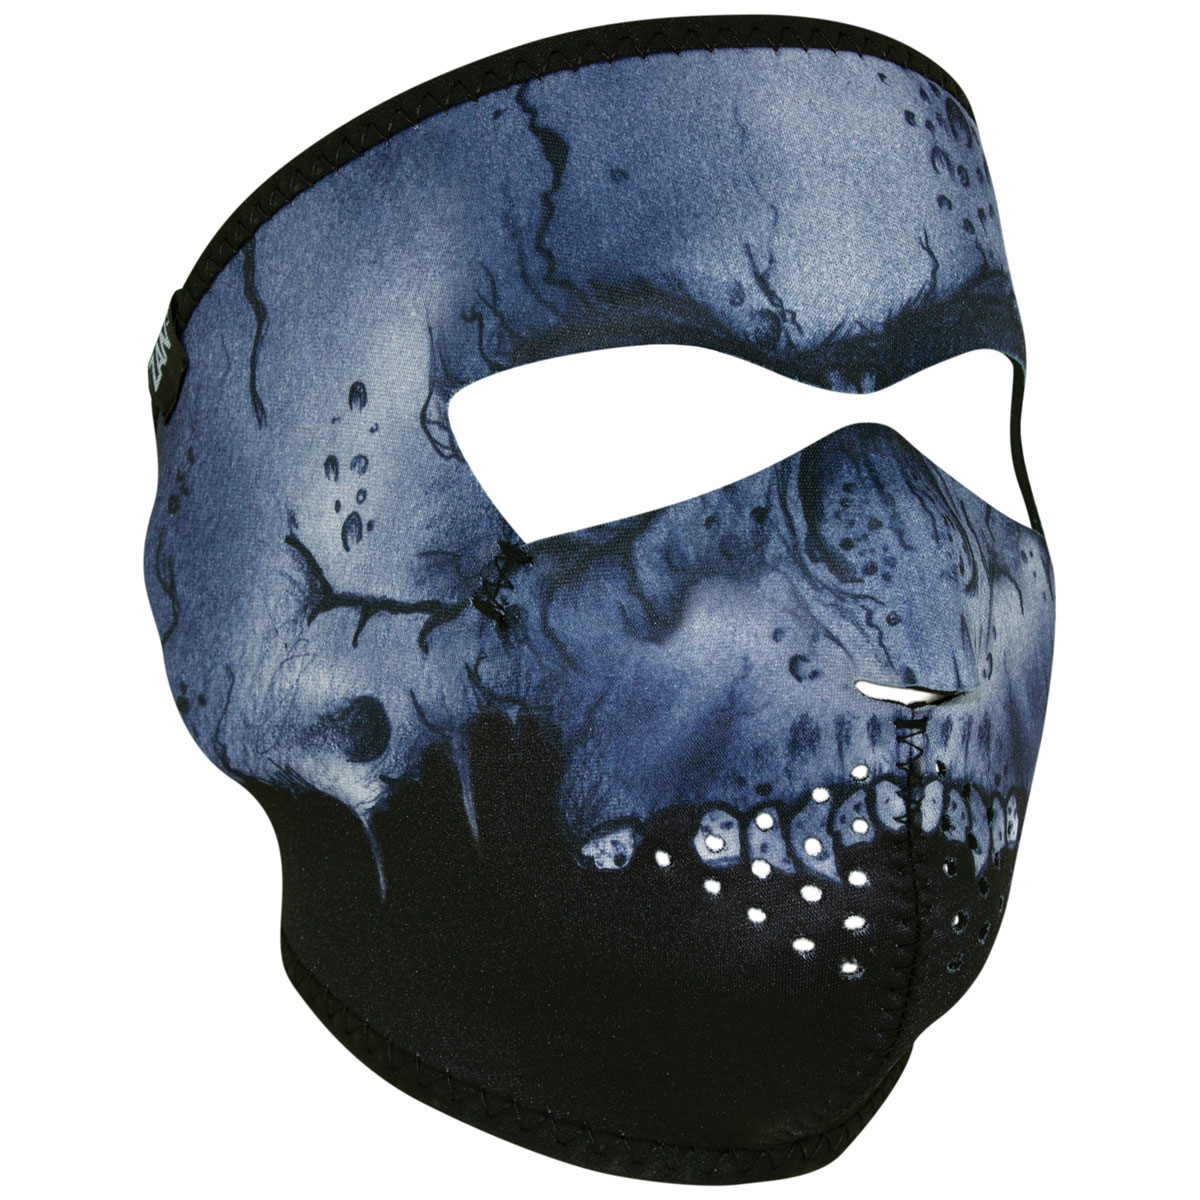 ZAN headgear Neoprene Midnight Skull Full Face Mask